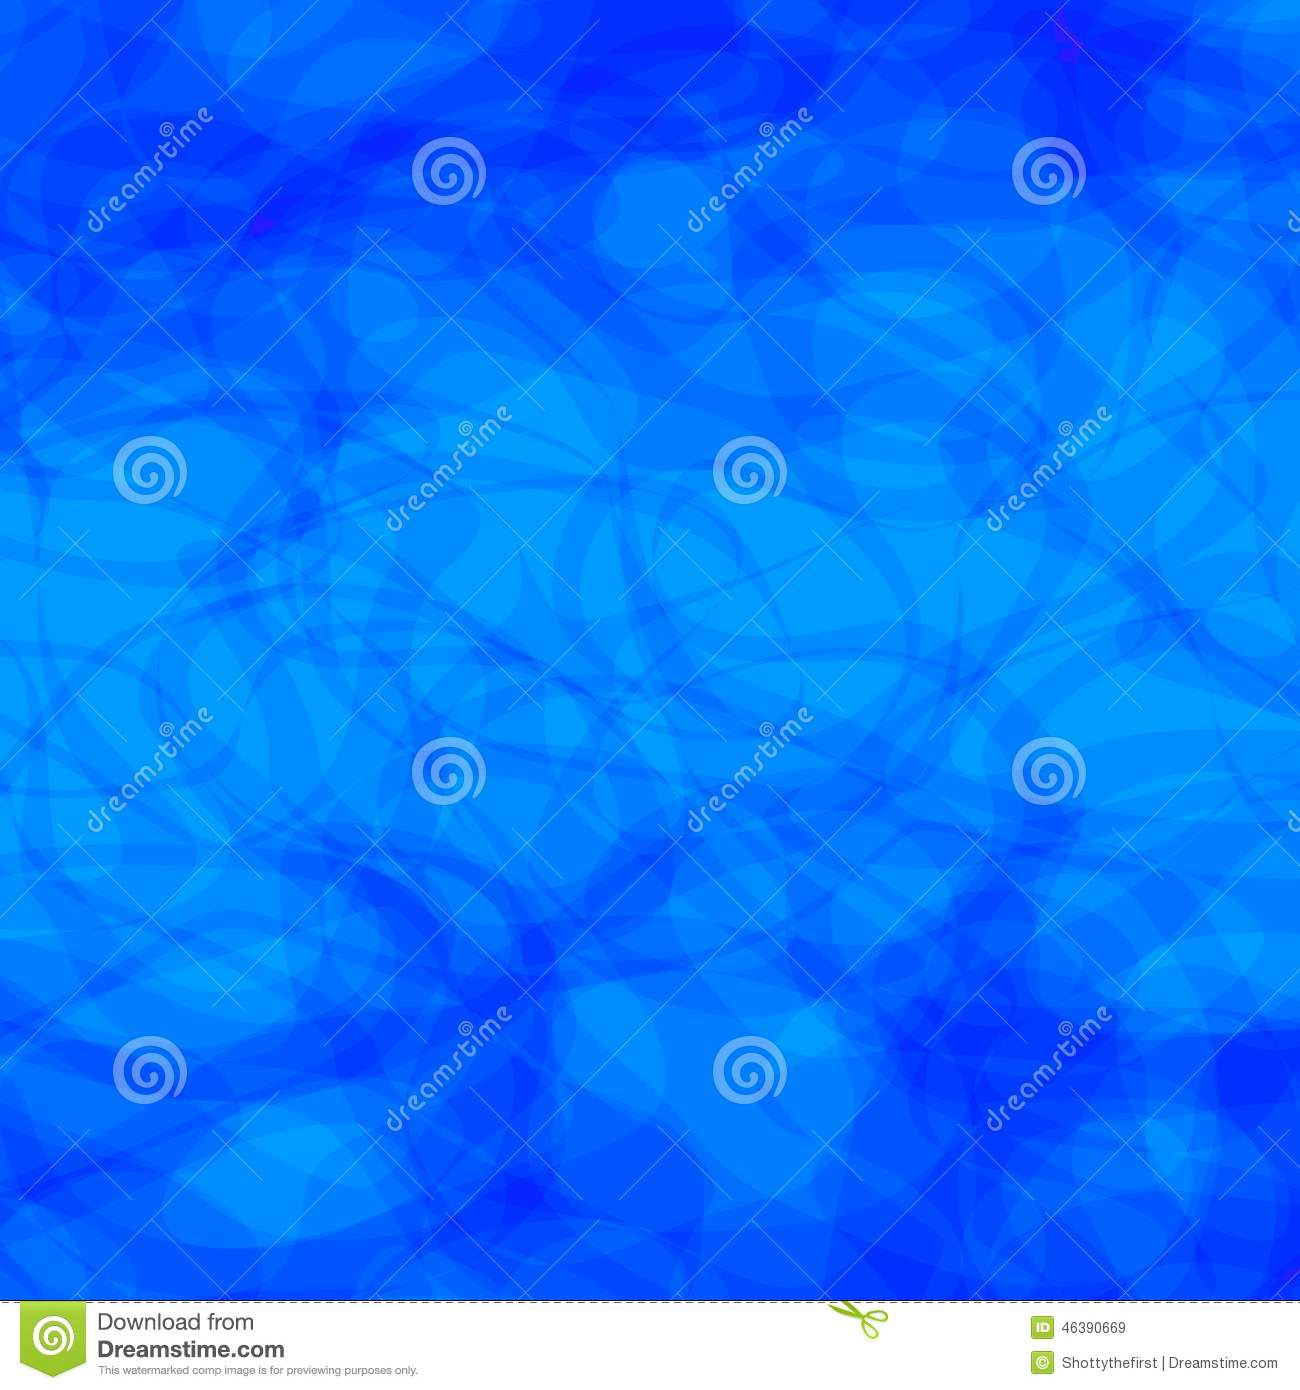 Abstract Book Cover Background : Professional business flyer or corporate brochure stock